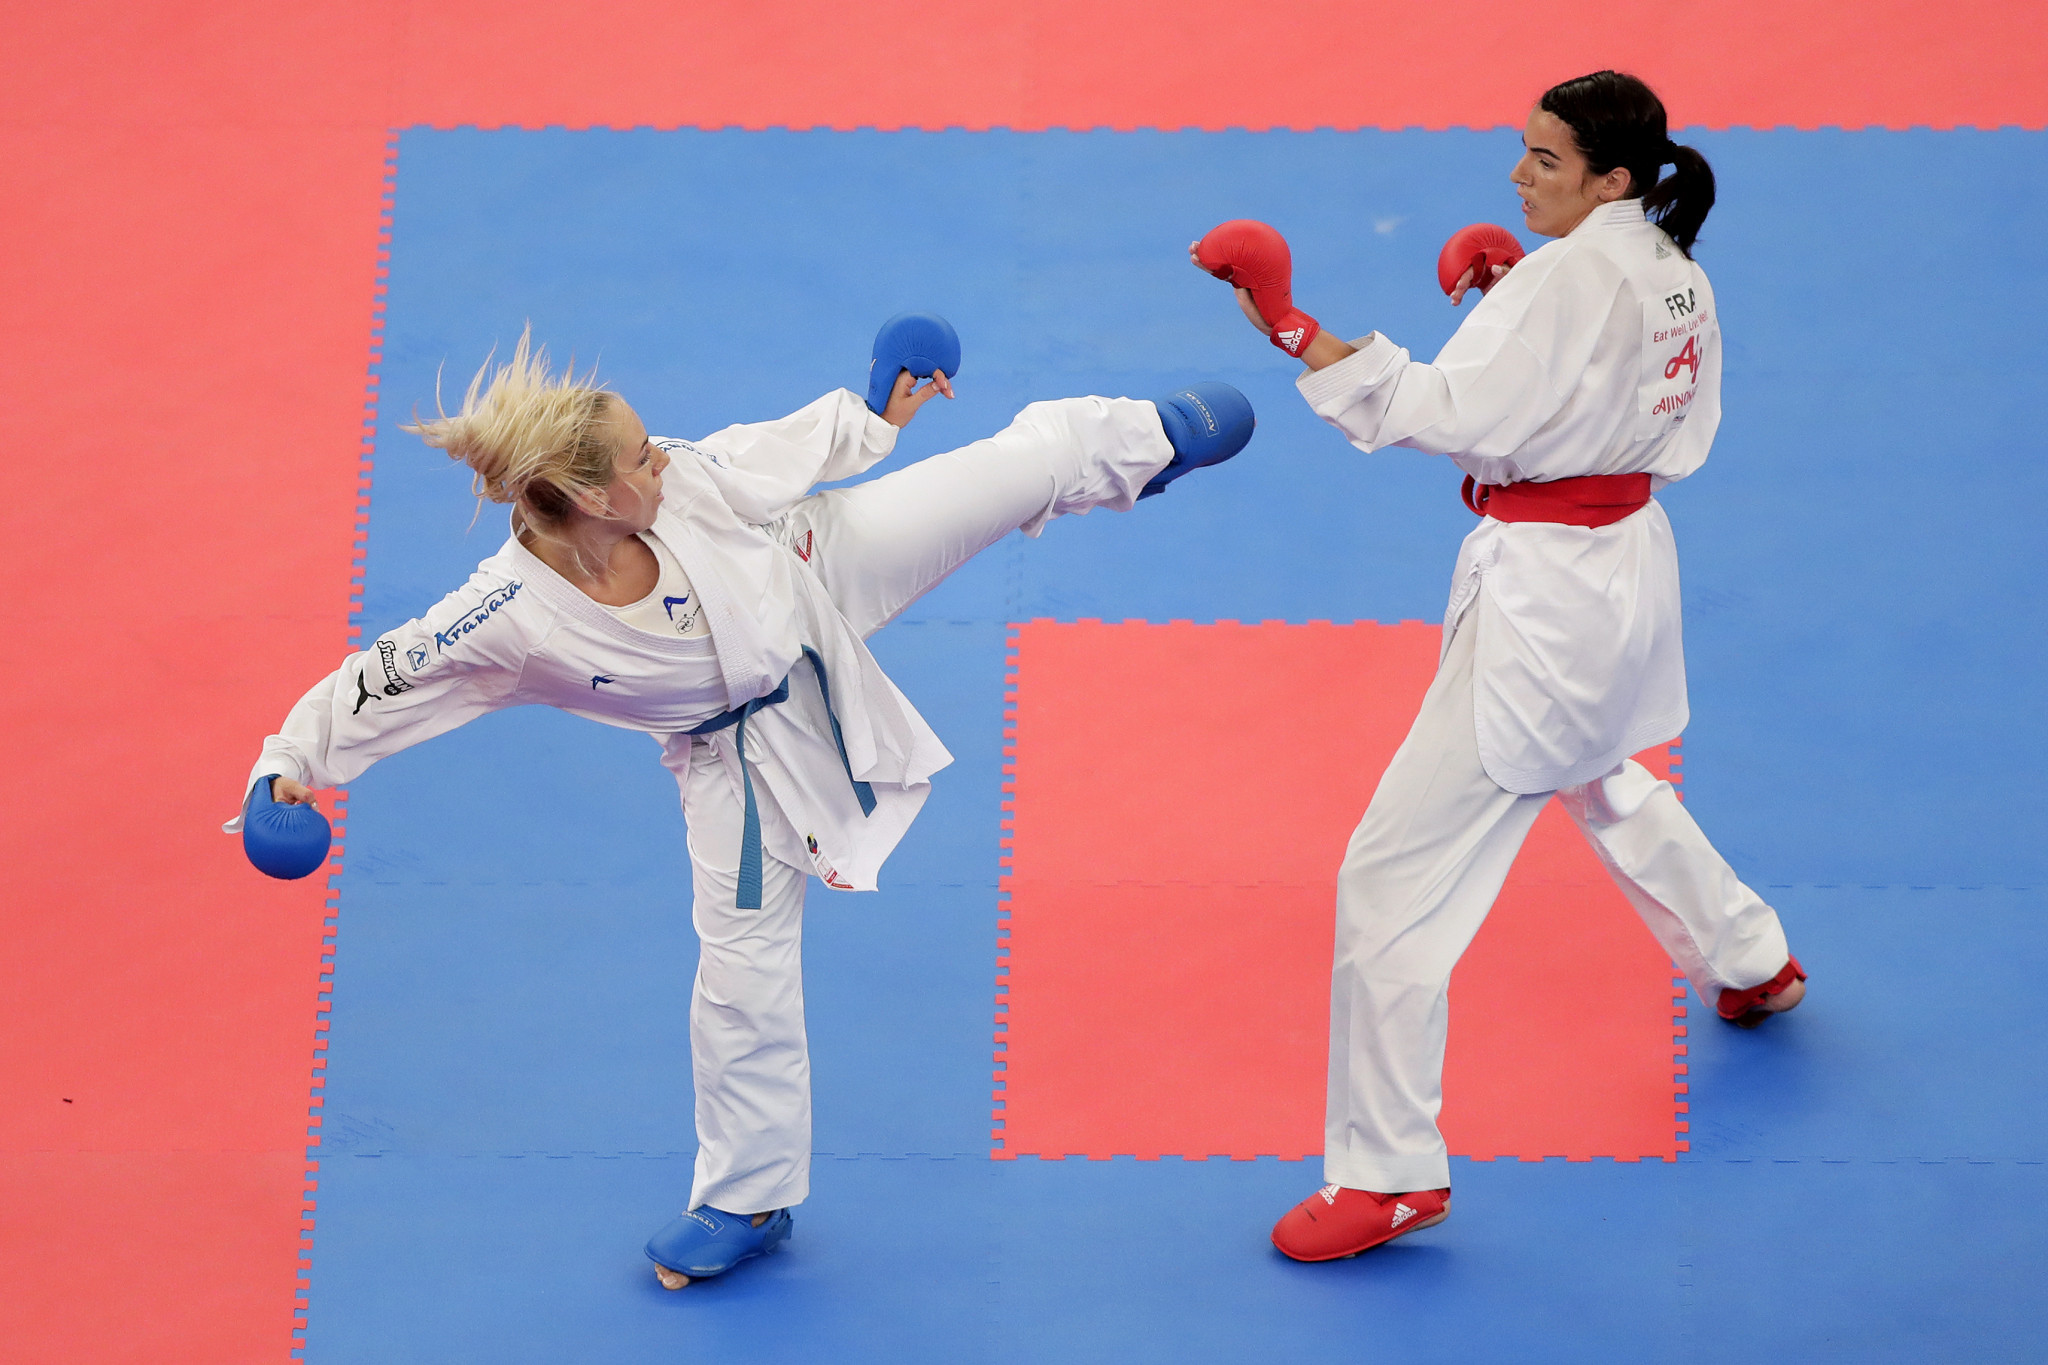 WKF hires communications firm to make most of Tokyo 2020 debut